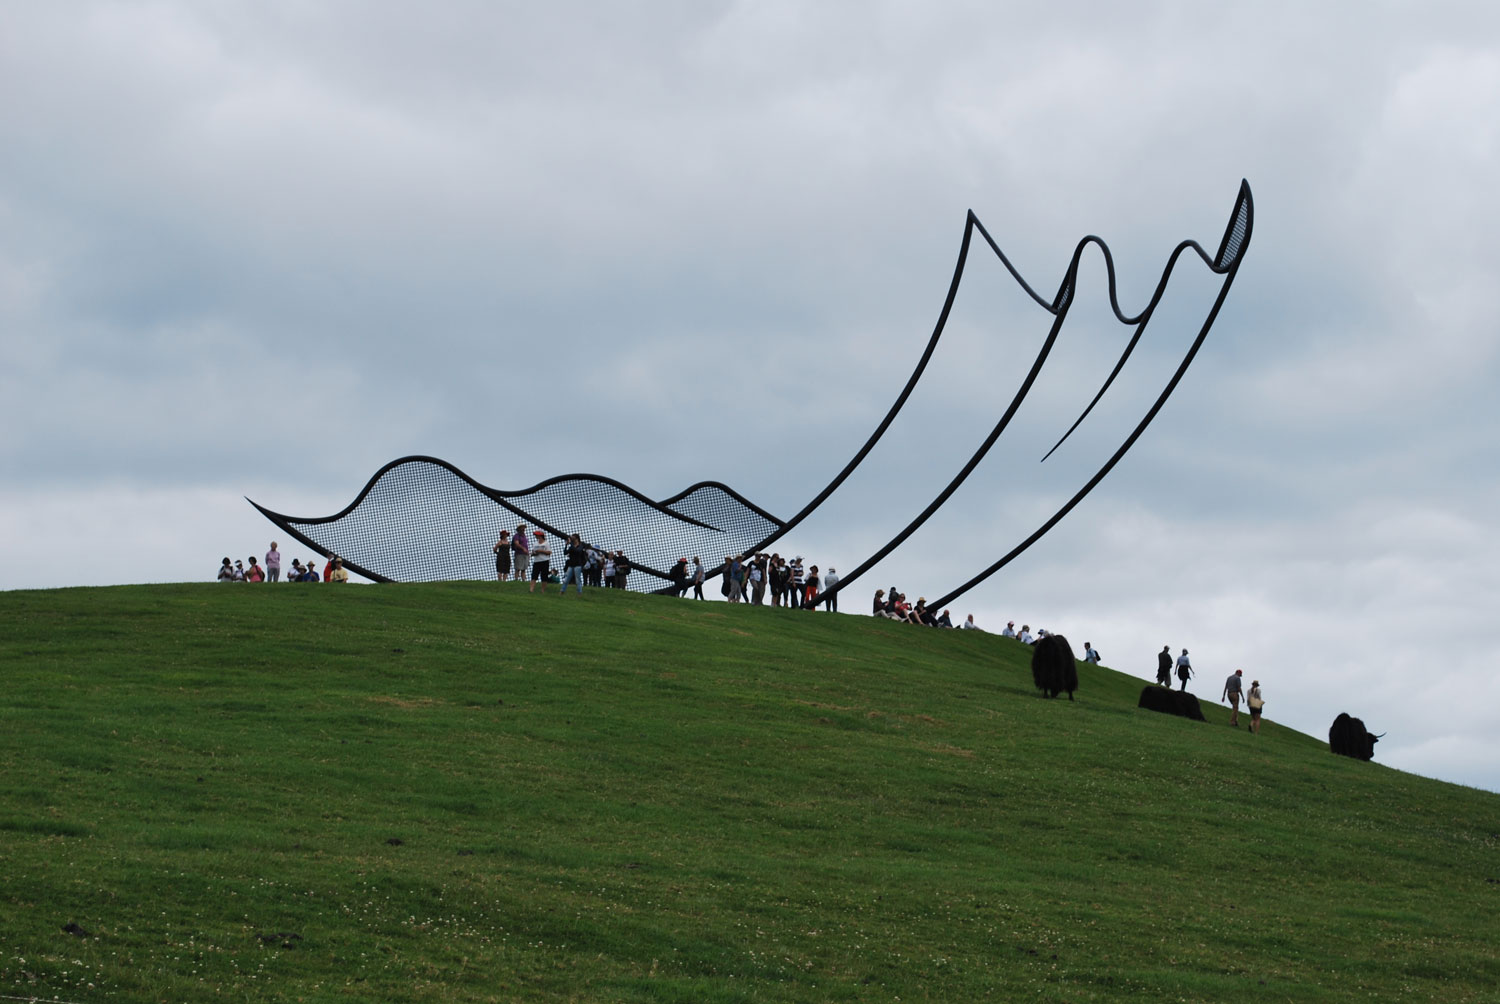 Horizons Installation by Neil Dawson at Gibbs Farm | Yellowtrace